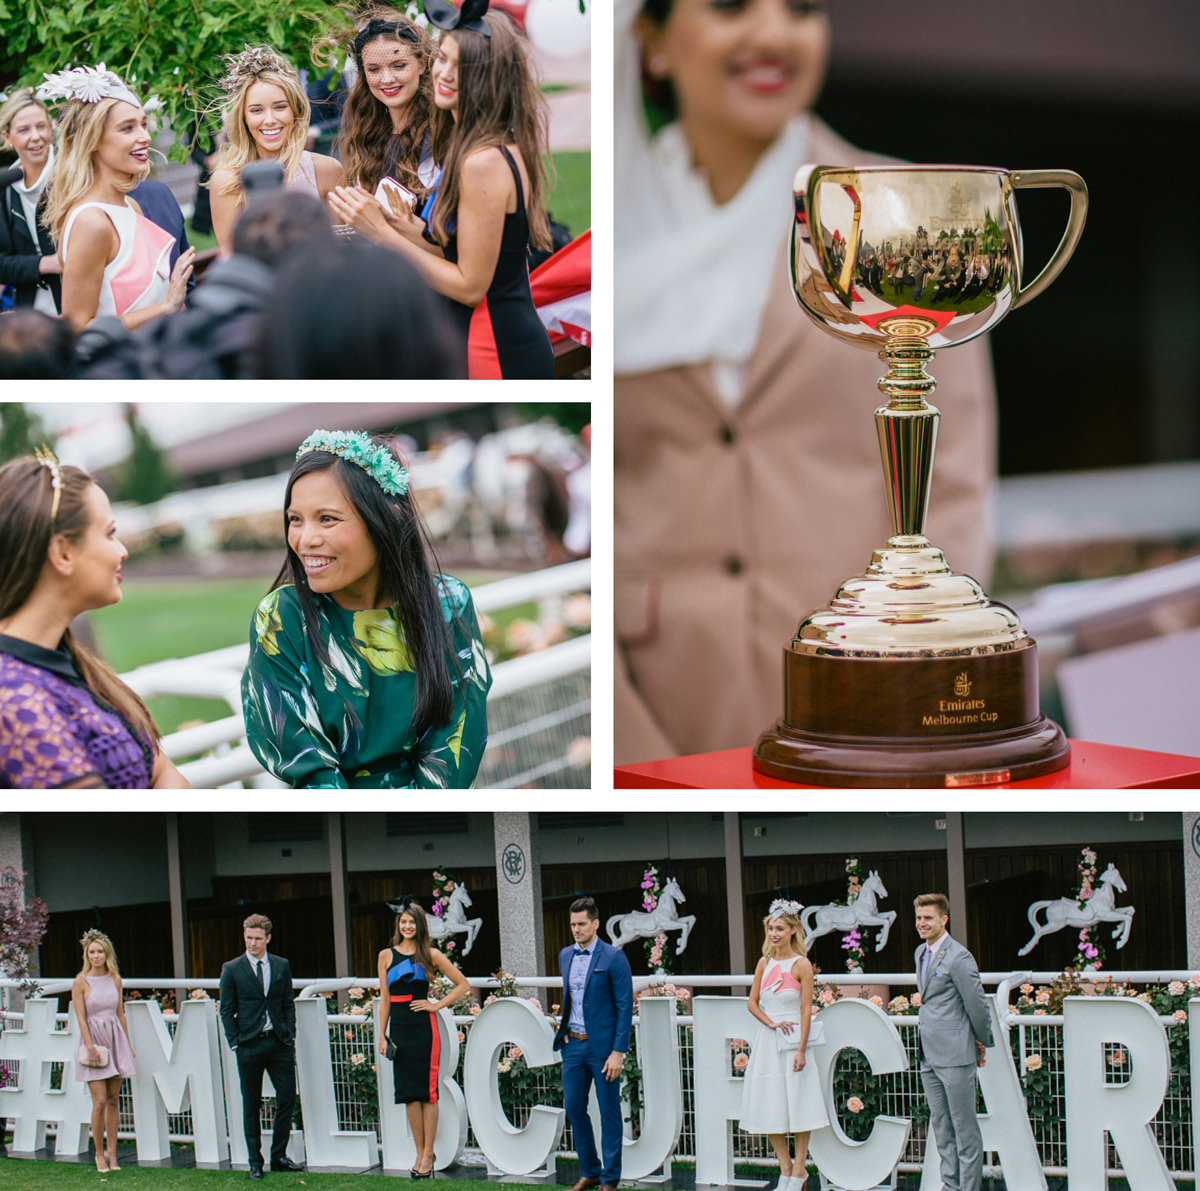 the Cup 2015 - Melbourne Spring Racing